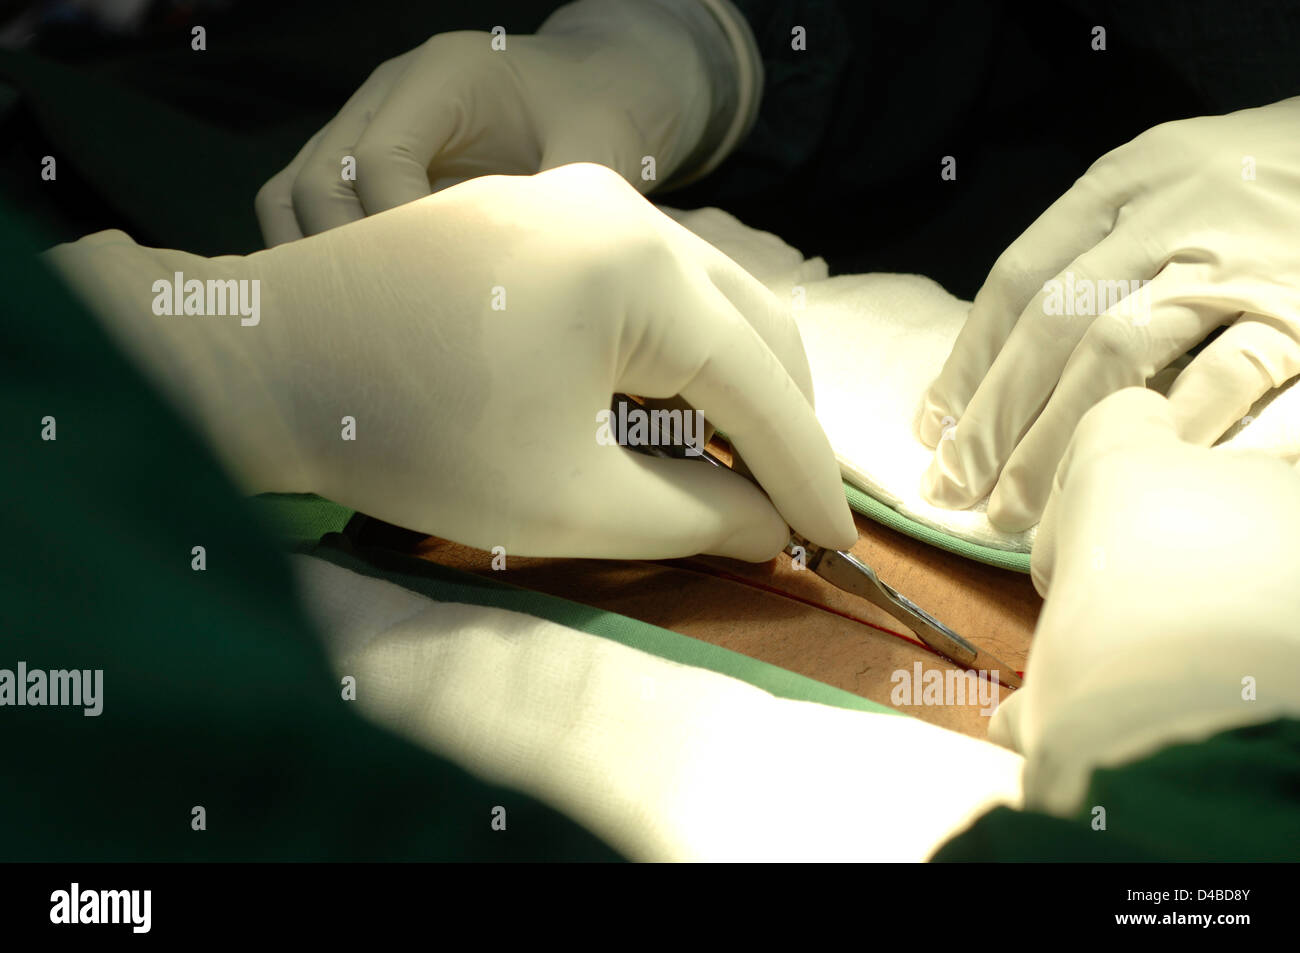 Surgeon making initial incision - Stock Image